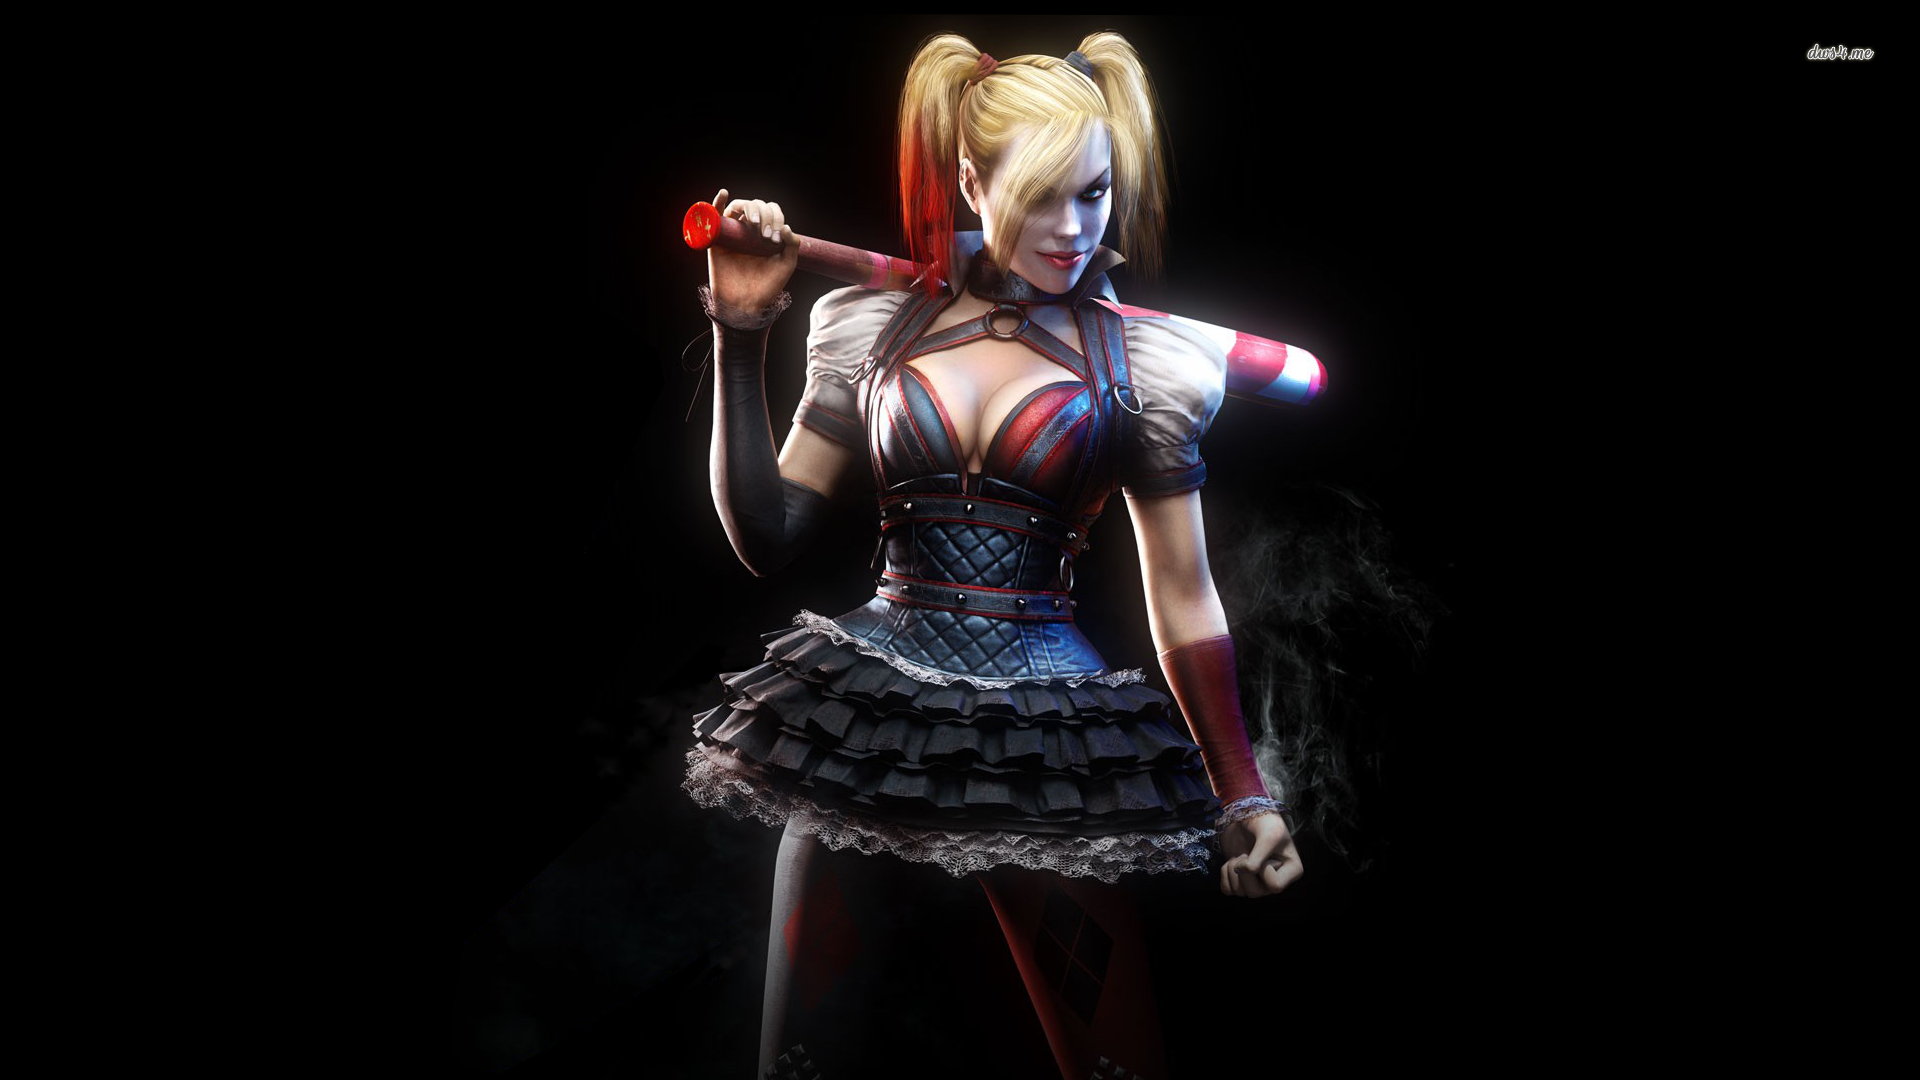 Free Download Harley Quinn Arkham Knight Wallpaper 1920x1080 For